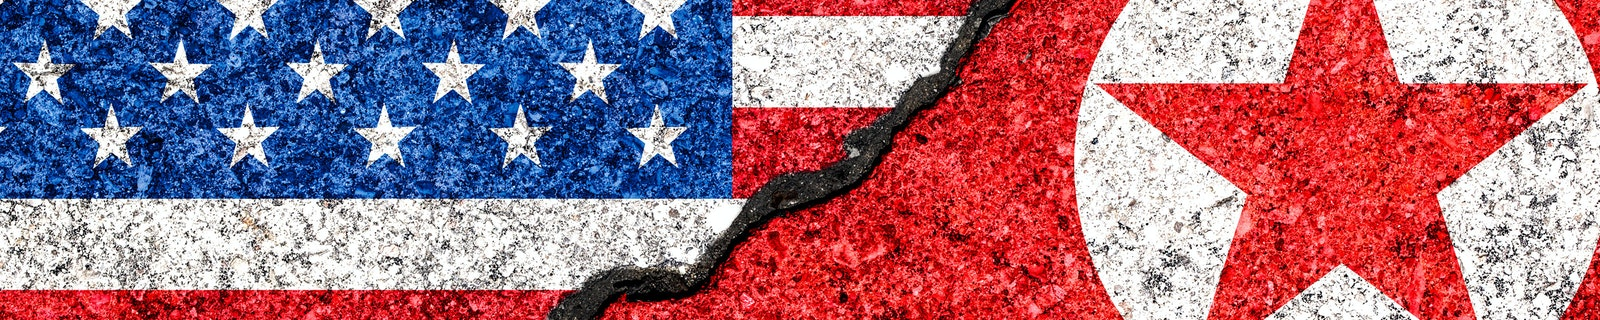 Flags of North Korea and USA painted on cracked wall background